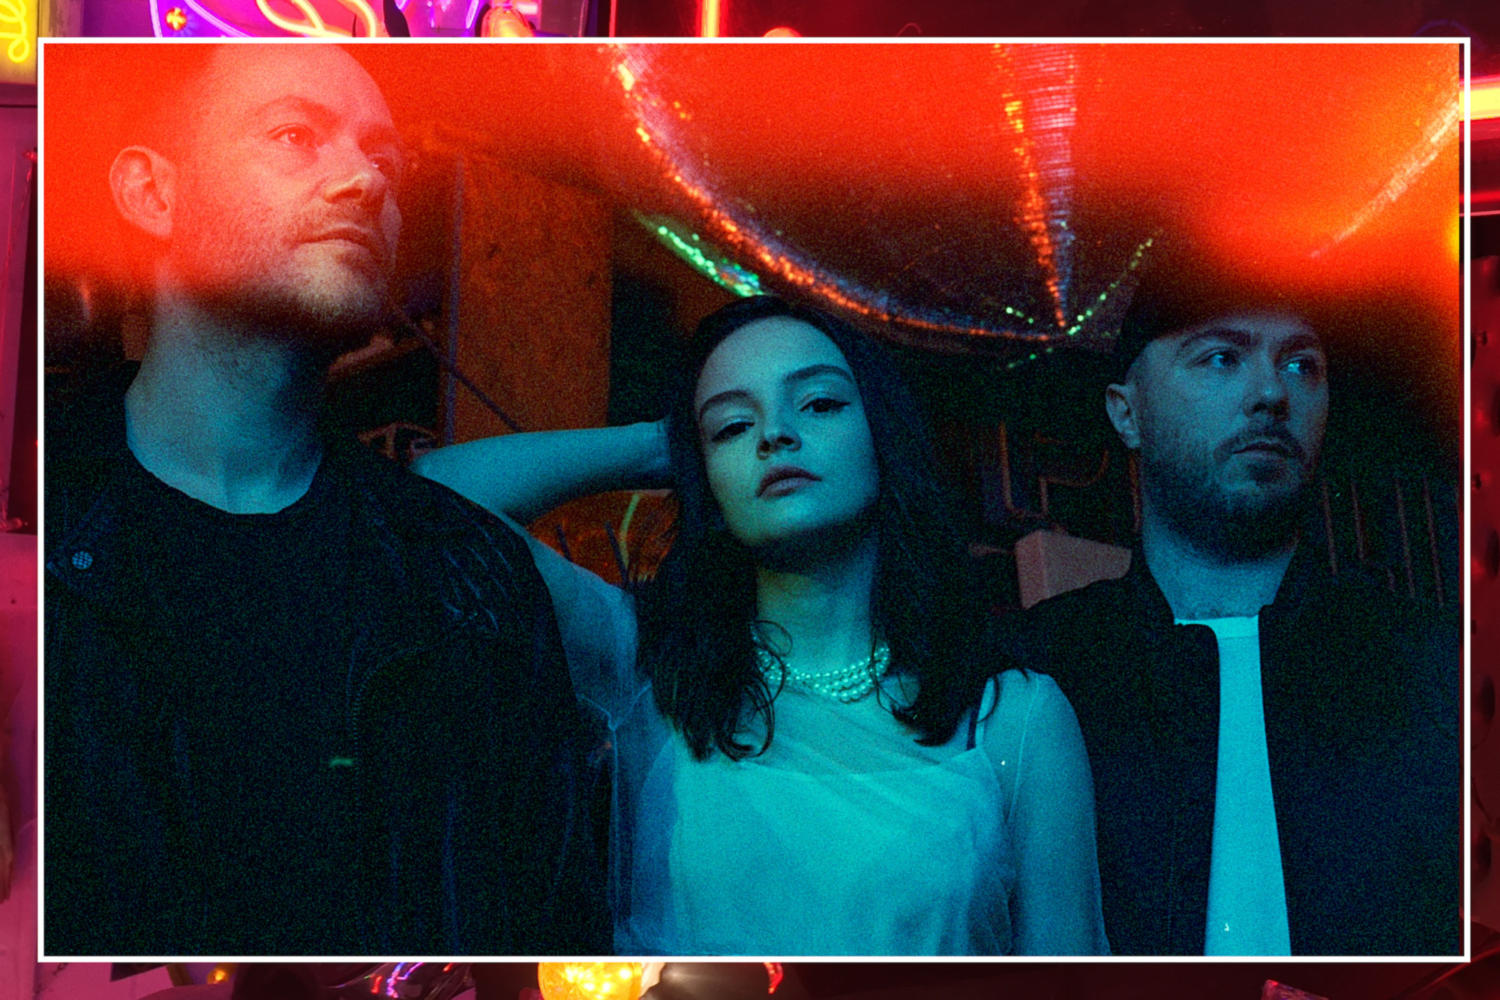 Chvrches team up with Marshmello for 'Here With Me'